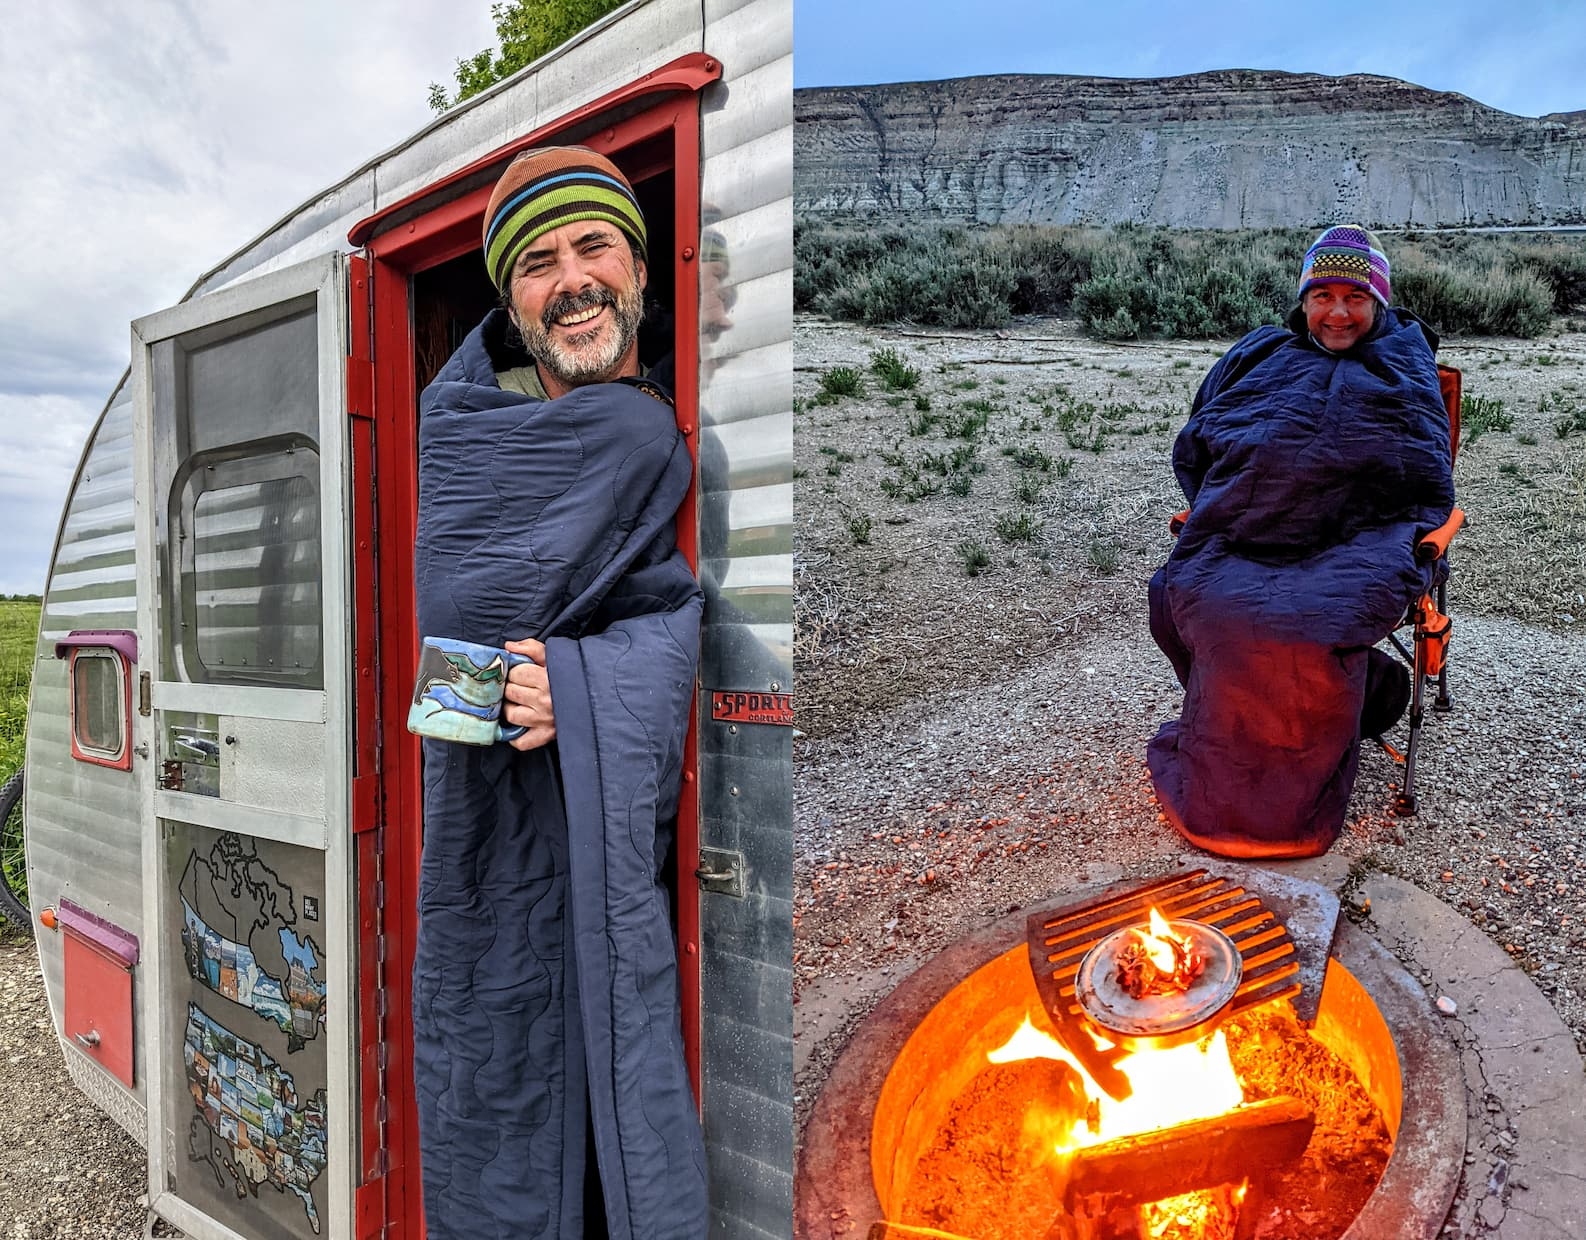 Shari and Hutch full time Rvers cozied up in their heated blankets in their Rv and beside the fire.